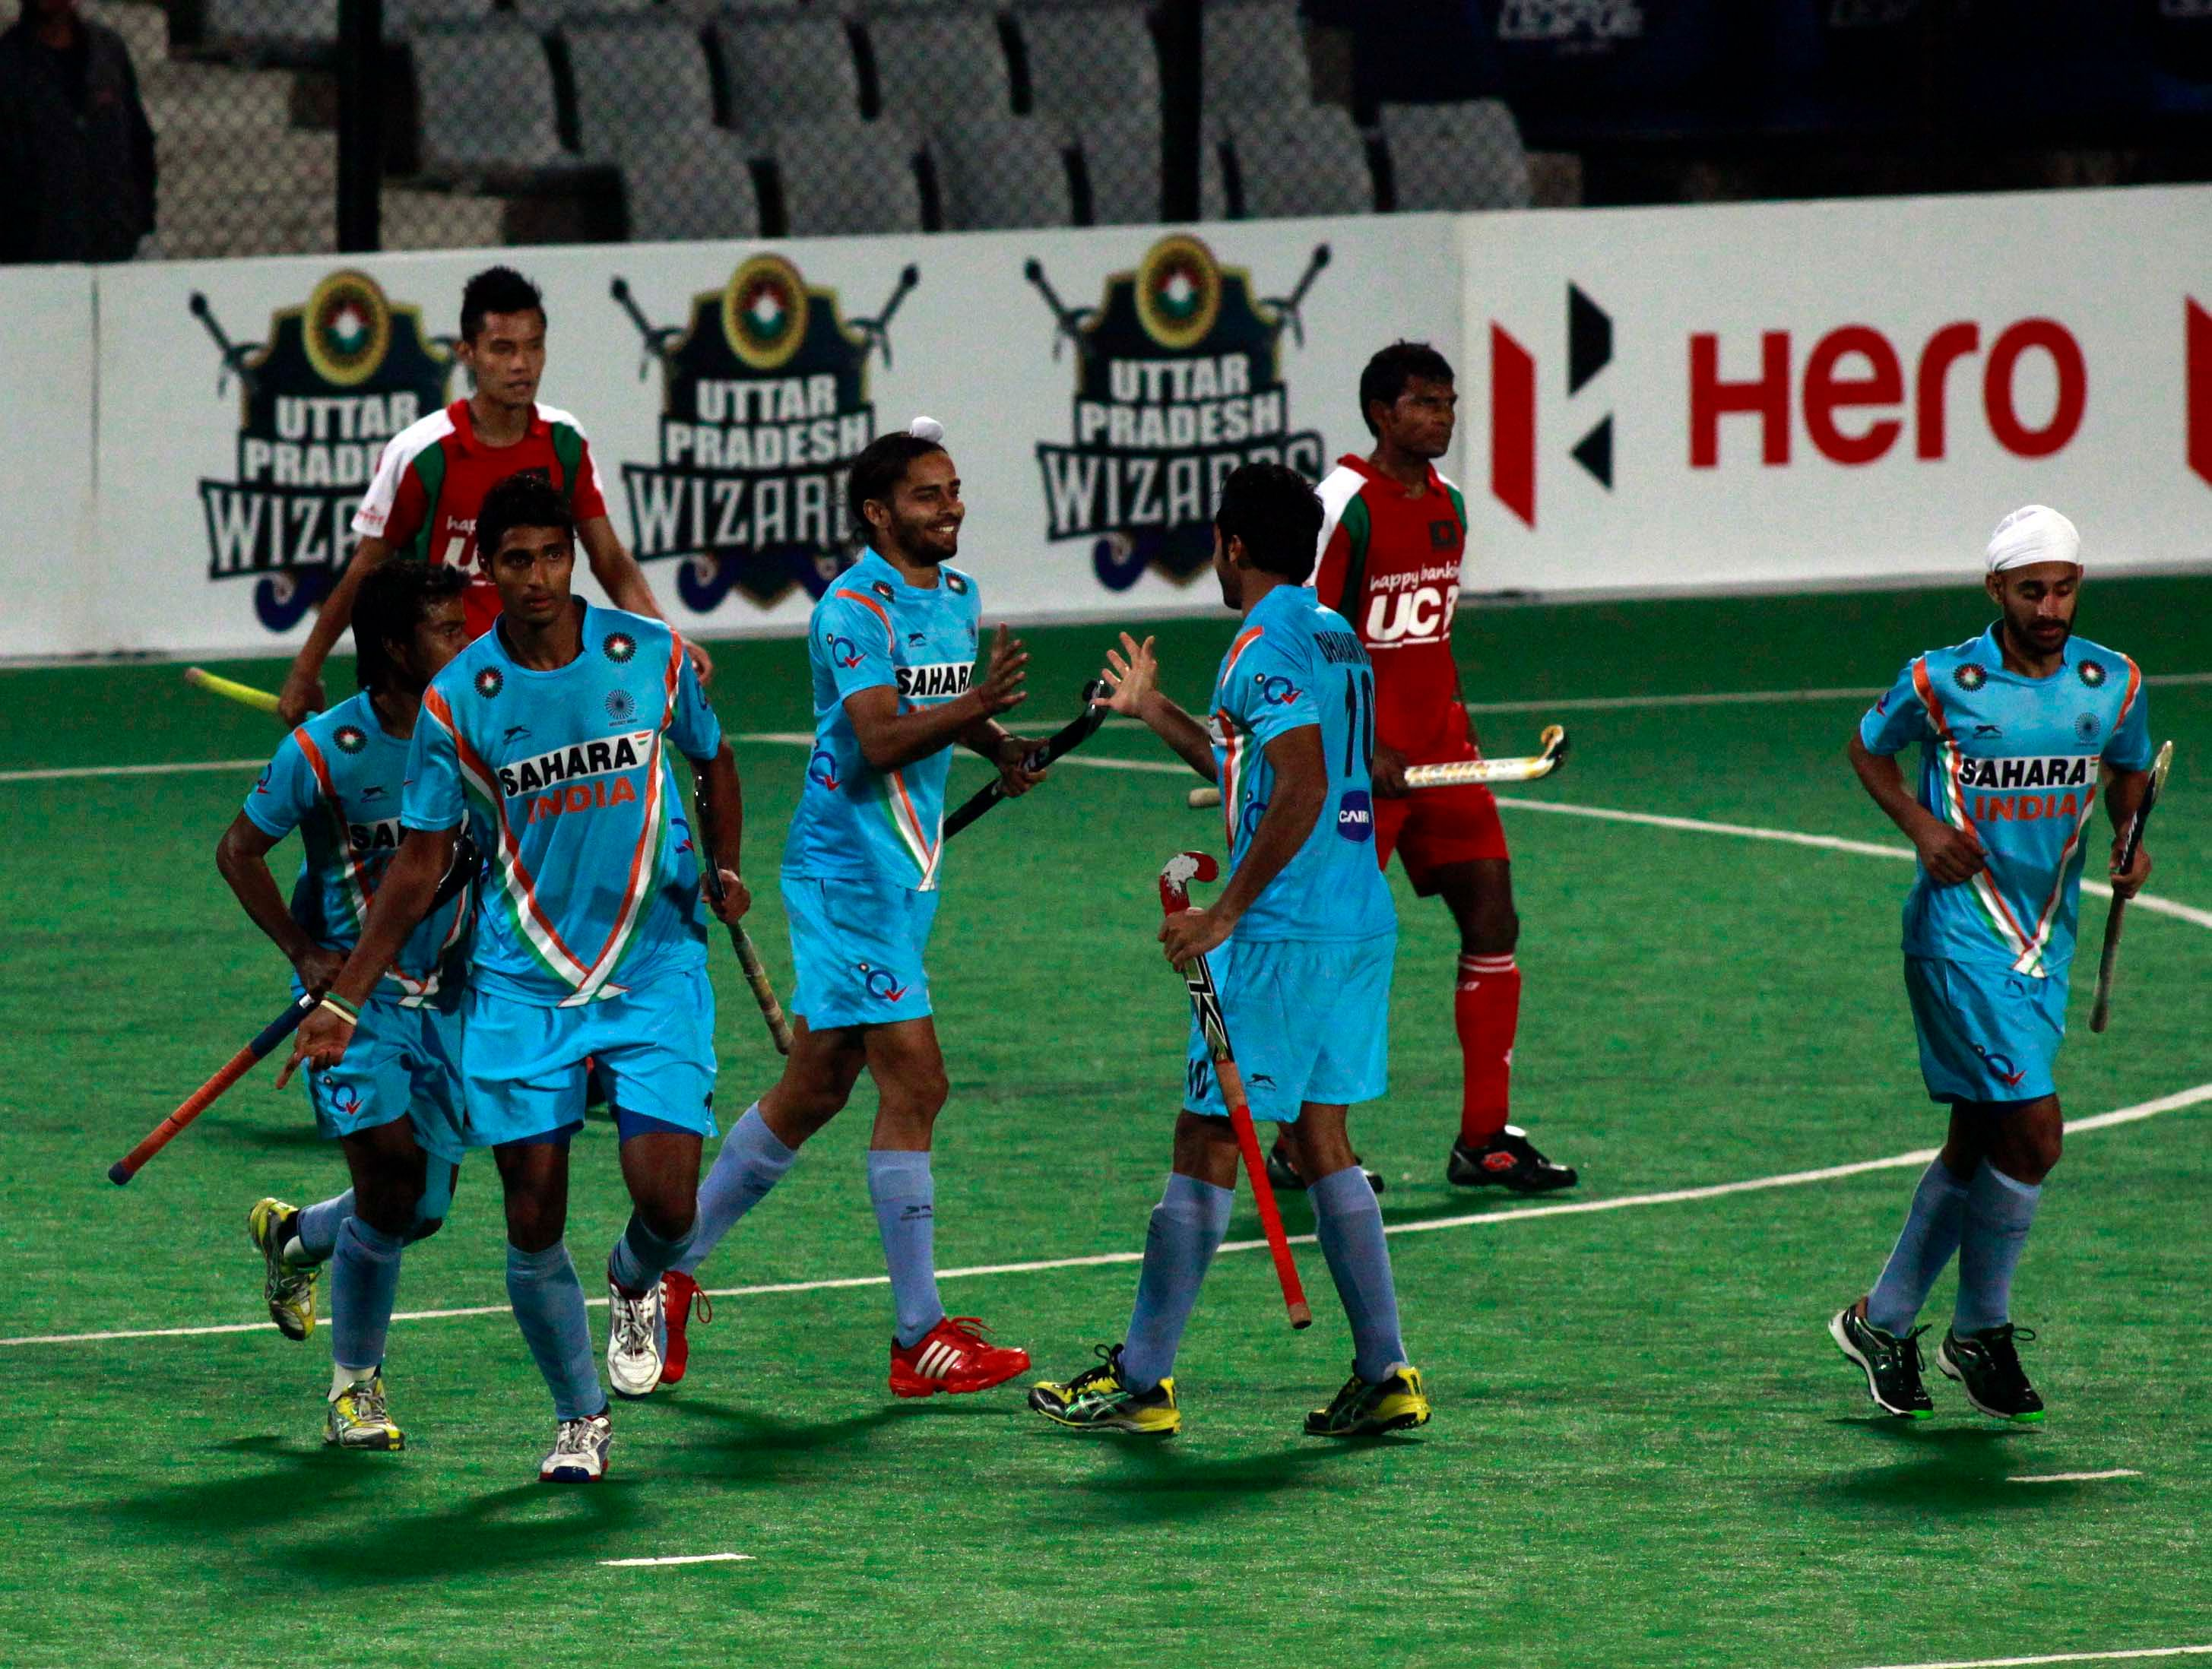 Sultan Azlan Shah Cup presents a golden opportunity for India's youngsters